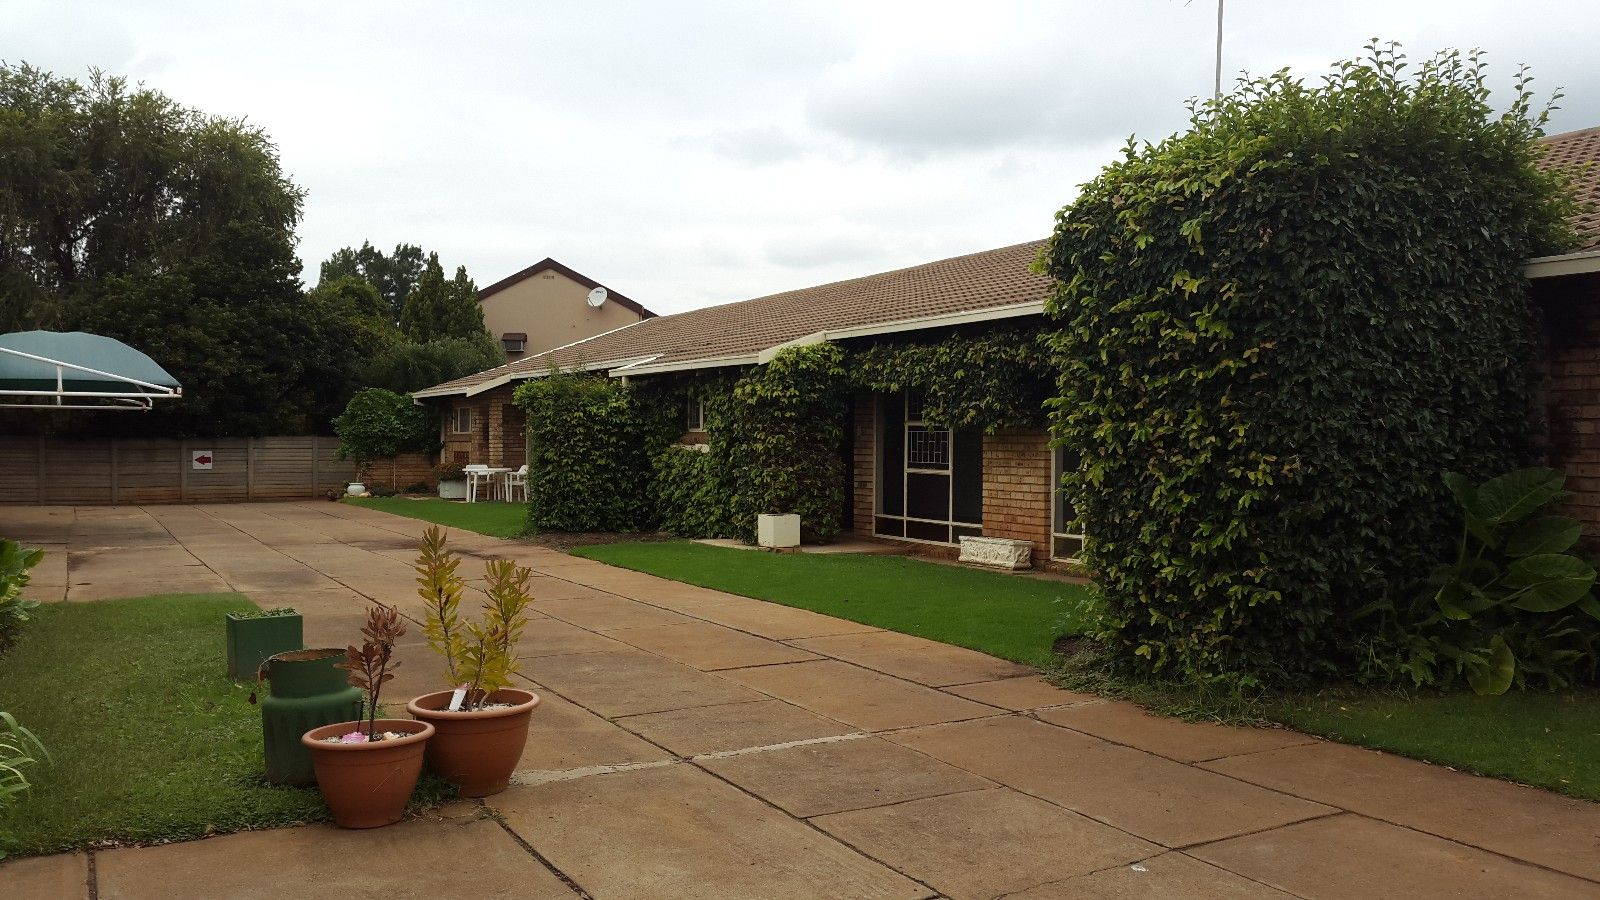 Potchefstroom Central property for sale. Ref No: 13457215. Picture no 2